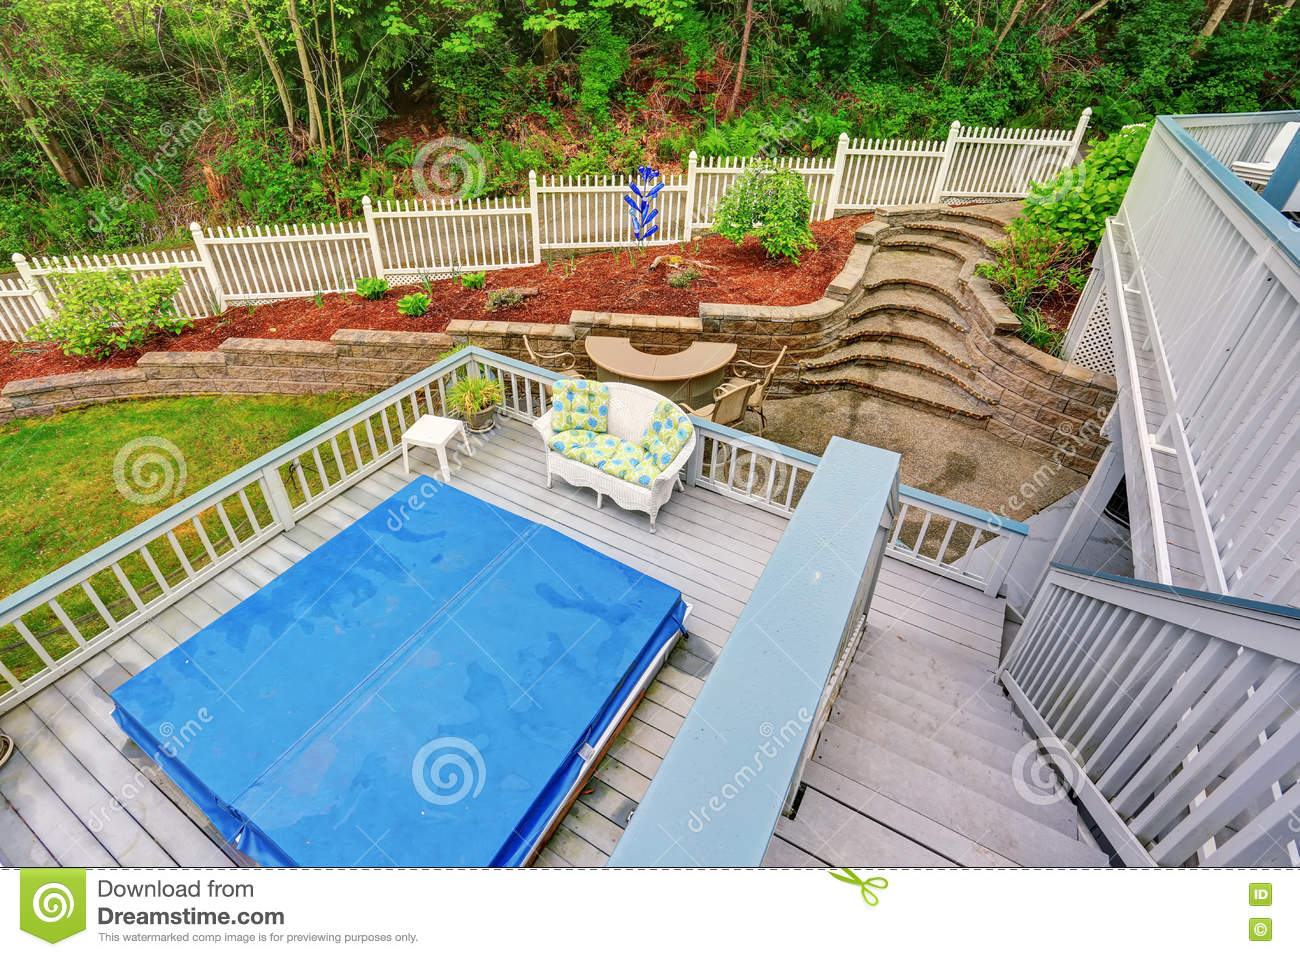 Two Level Backyard Deck With Jacuzzi On The First Floor